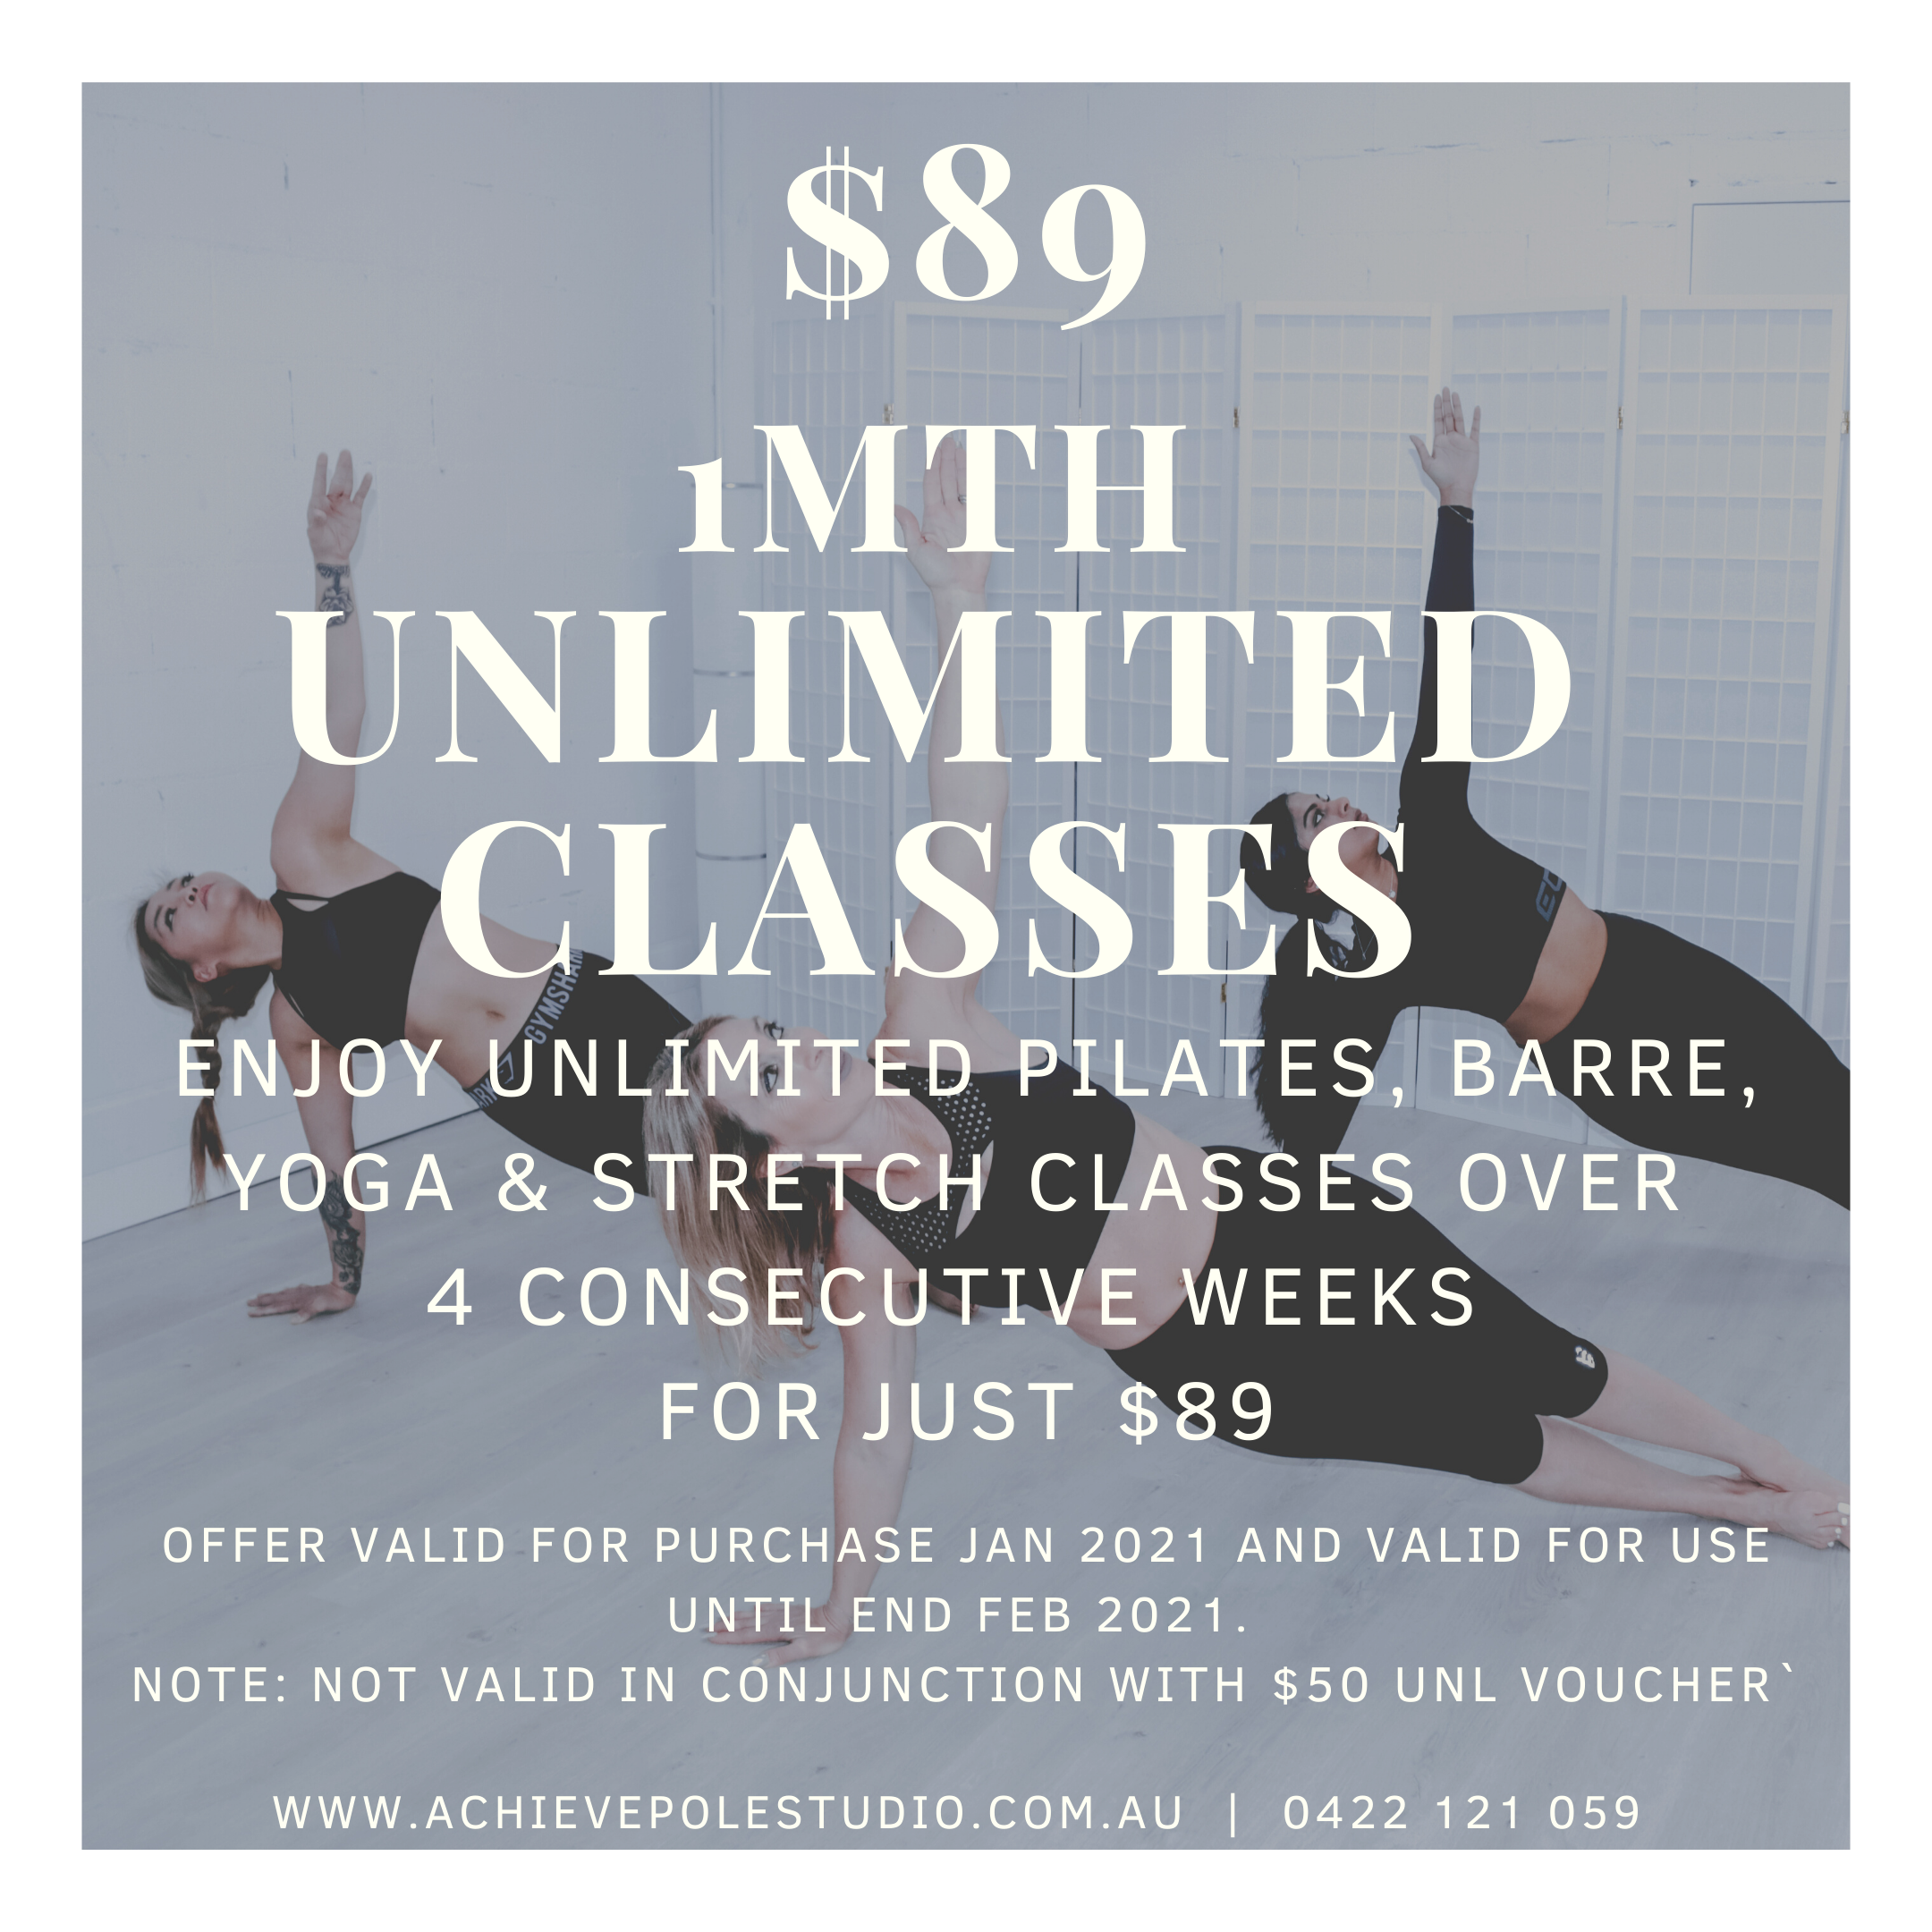 $89 1Mth Unlimited Wellness Classes